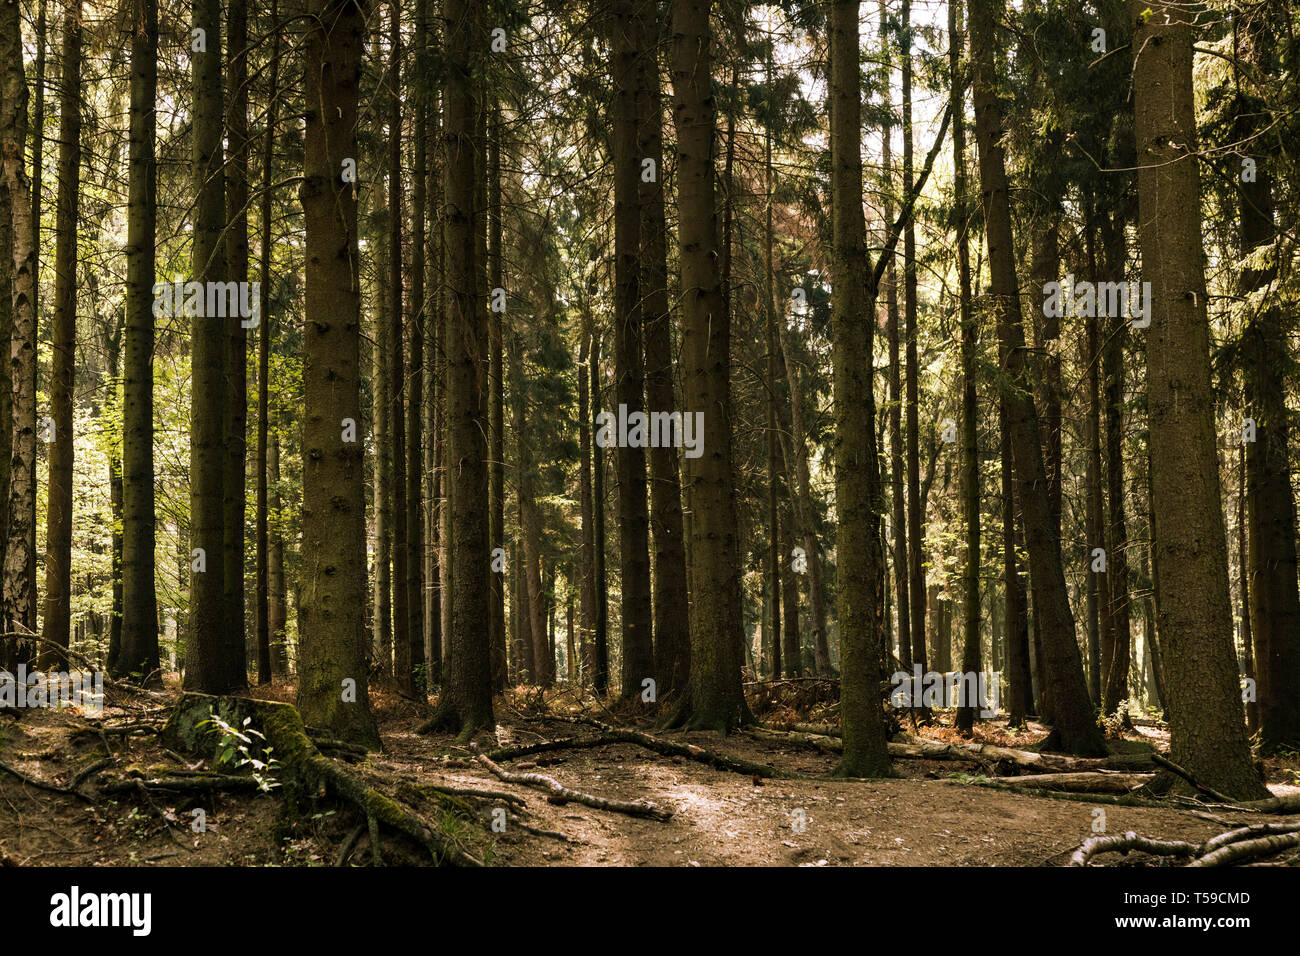 Spruce trees in a forest - Stock Image